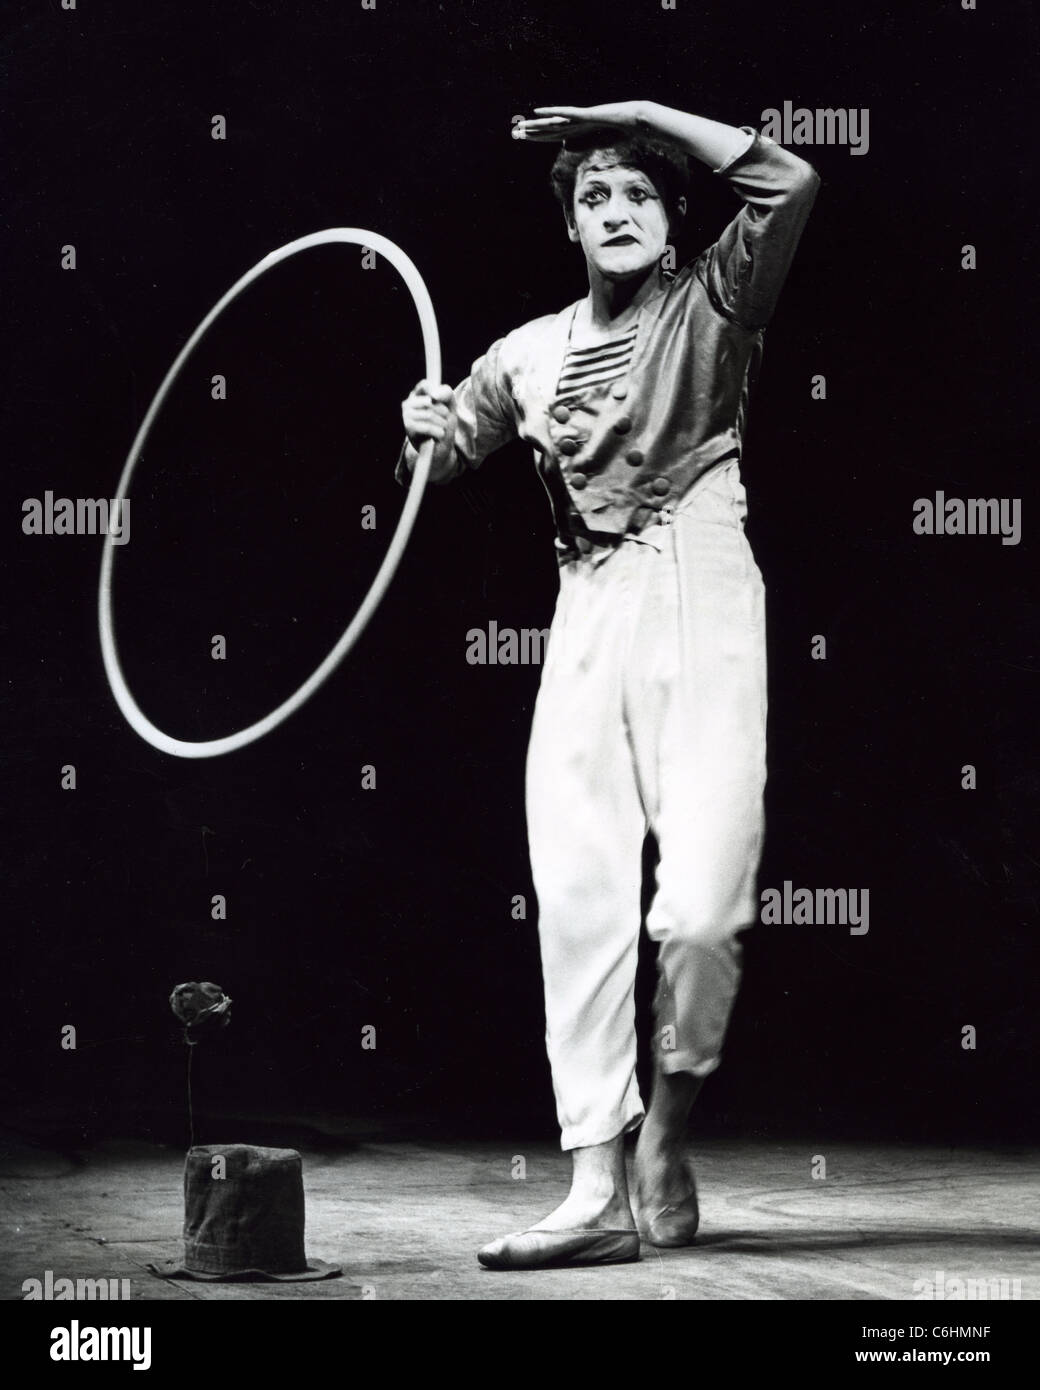 MARCEL MARCEAU (1923-2007) French actor and mime artist - Stock Image